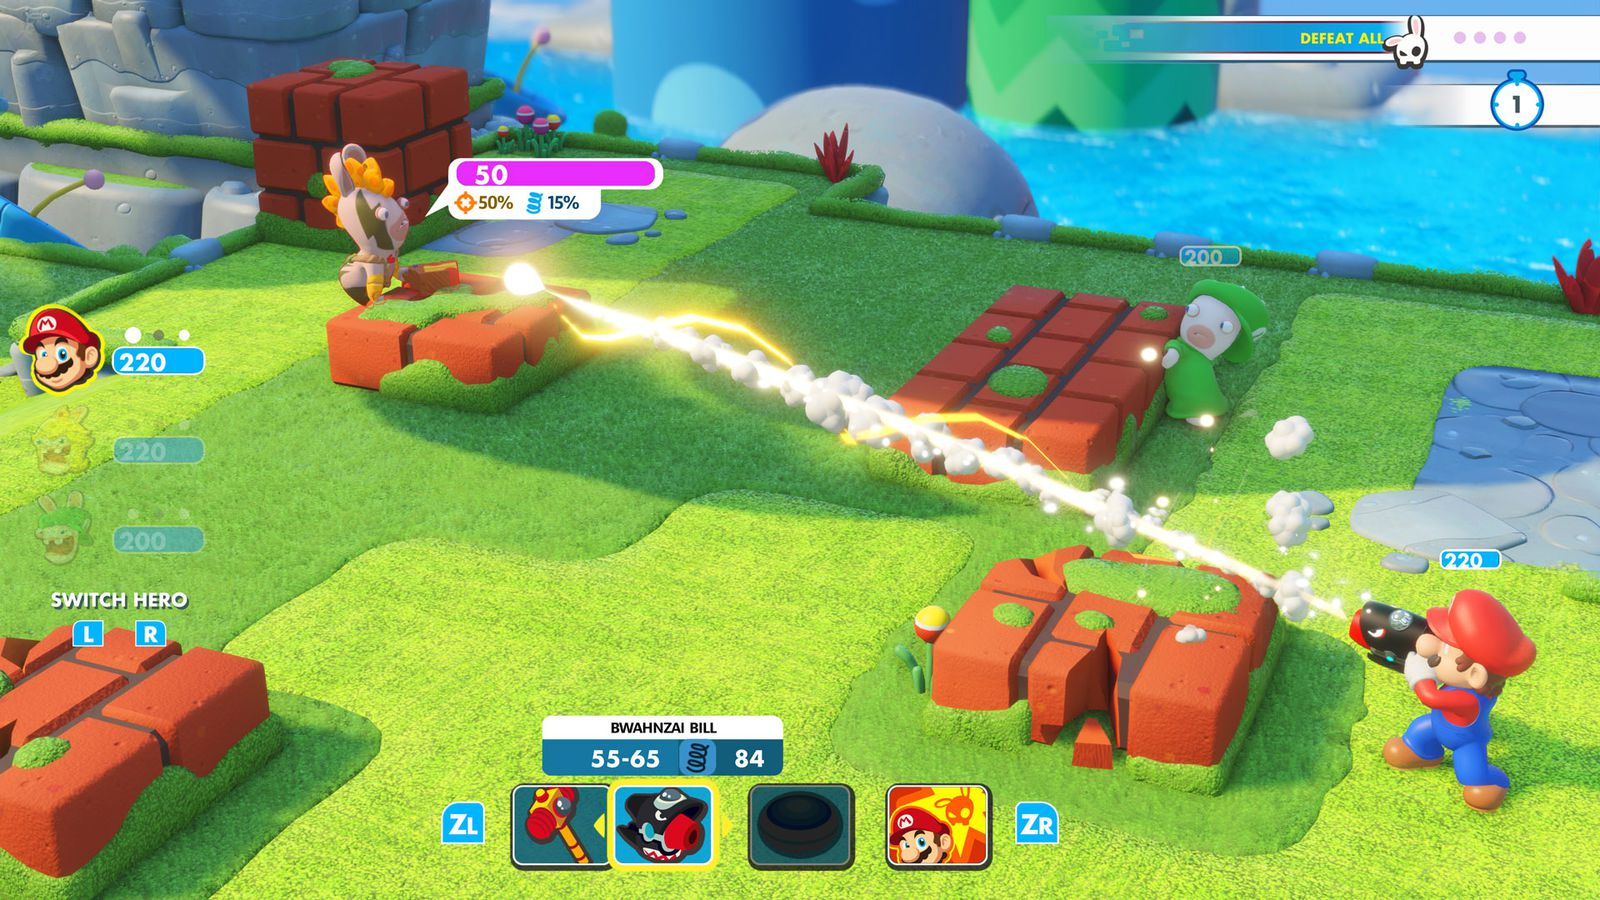 In this screenshot from Mario + Rabbids Kingdom Battle, Mario is aiming an arm cannon gun and shooting at a nearby rabbid with face paint. Both Mario and the Rabbid are standing next to waist-high blocks that they're using as cover. An objective in the up